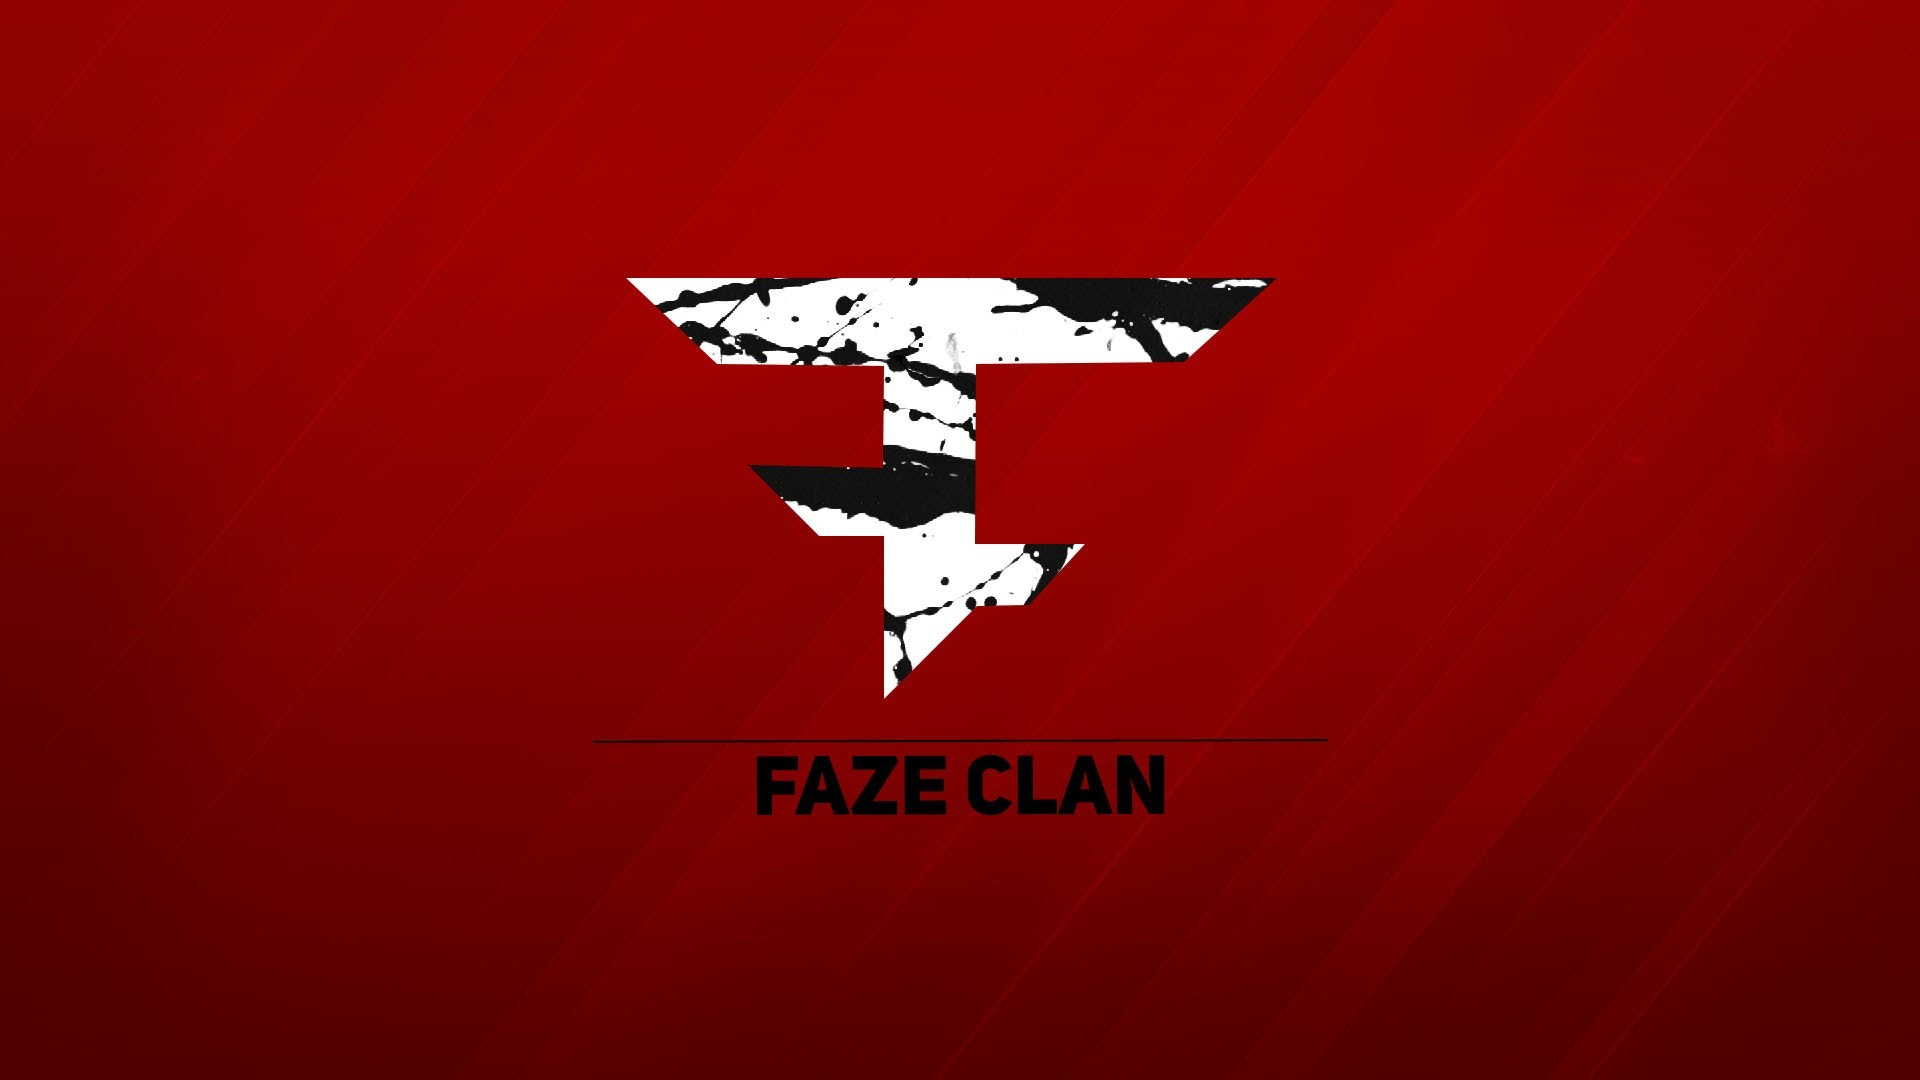 Faze Adapt Wallpaper 89 images 1920x1080